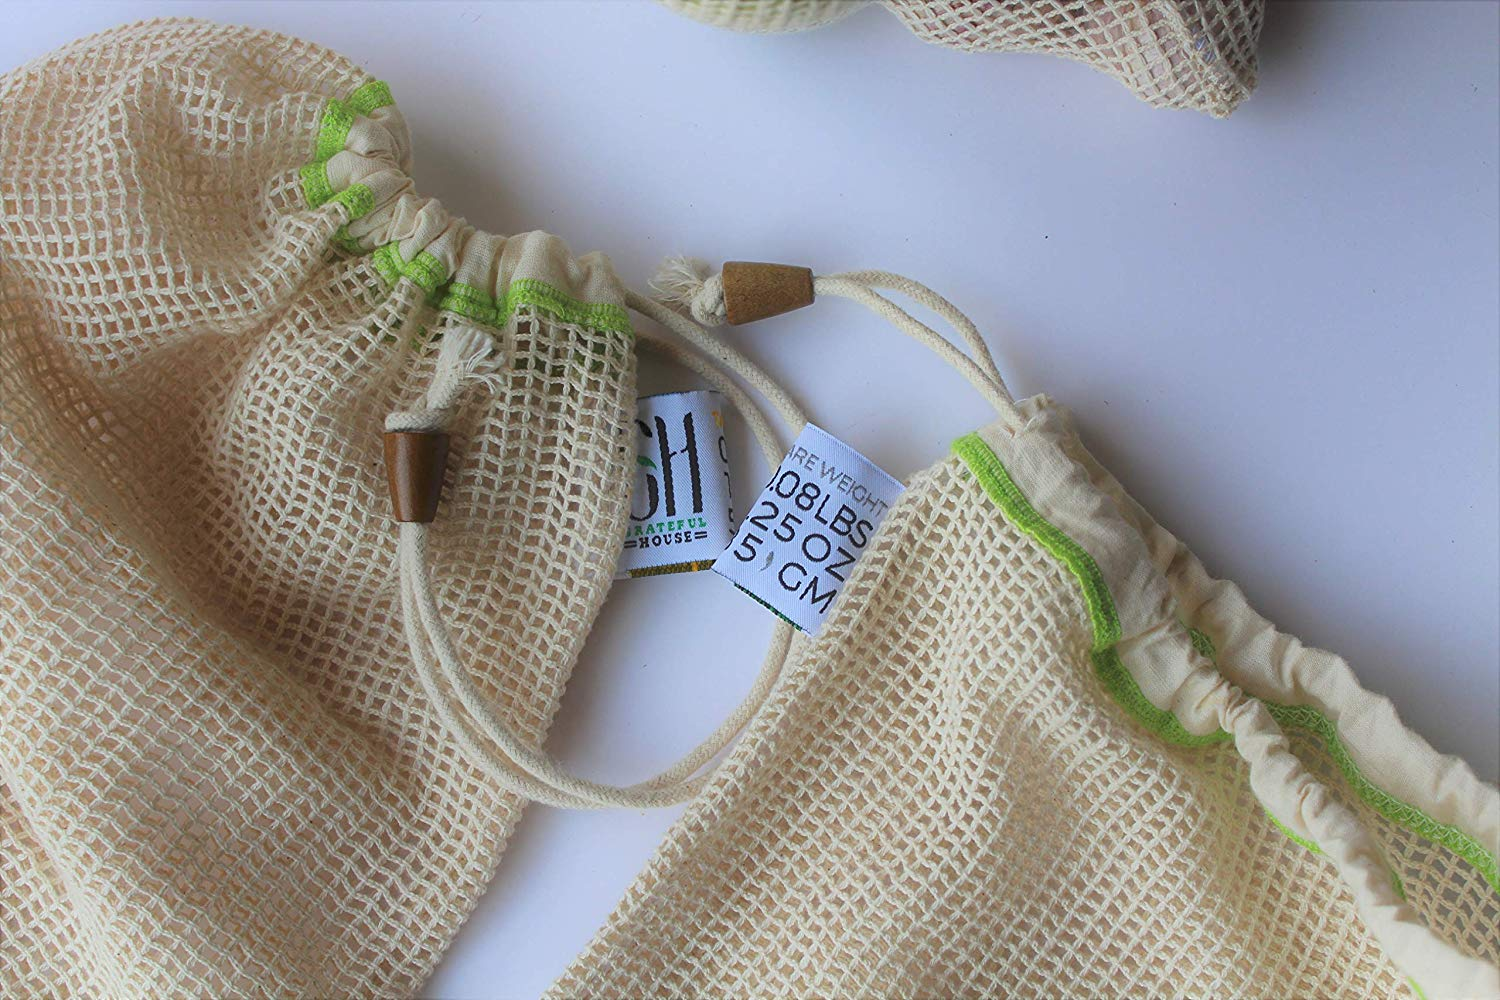 Durable and Machine produce bags Organic Cotton Unbleached Mesh and Muslin bag with tare weights on tags